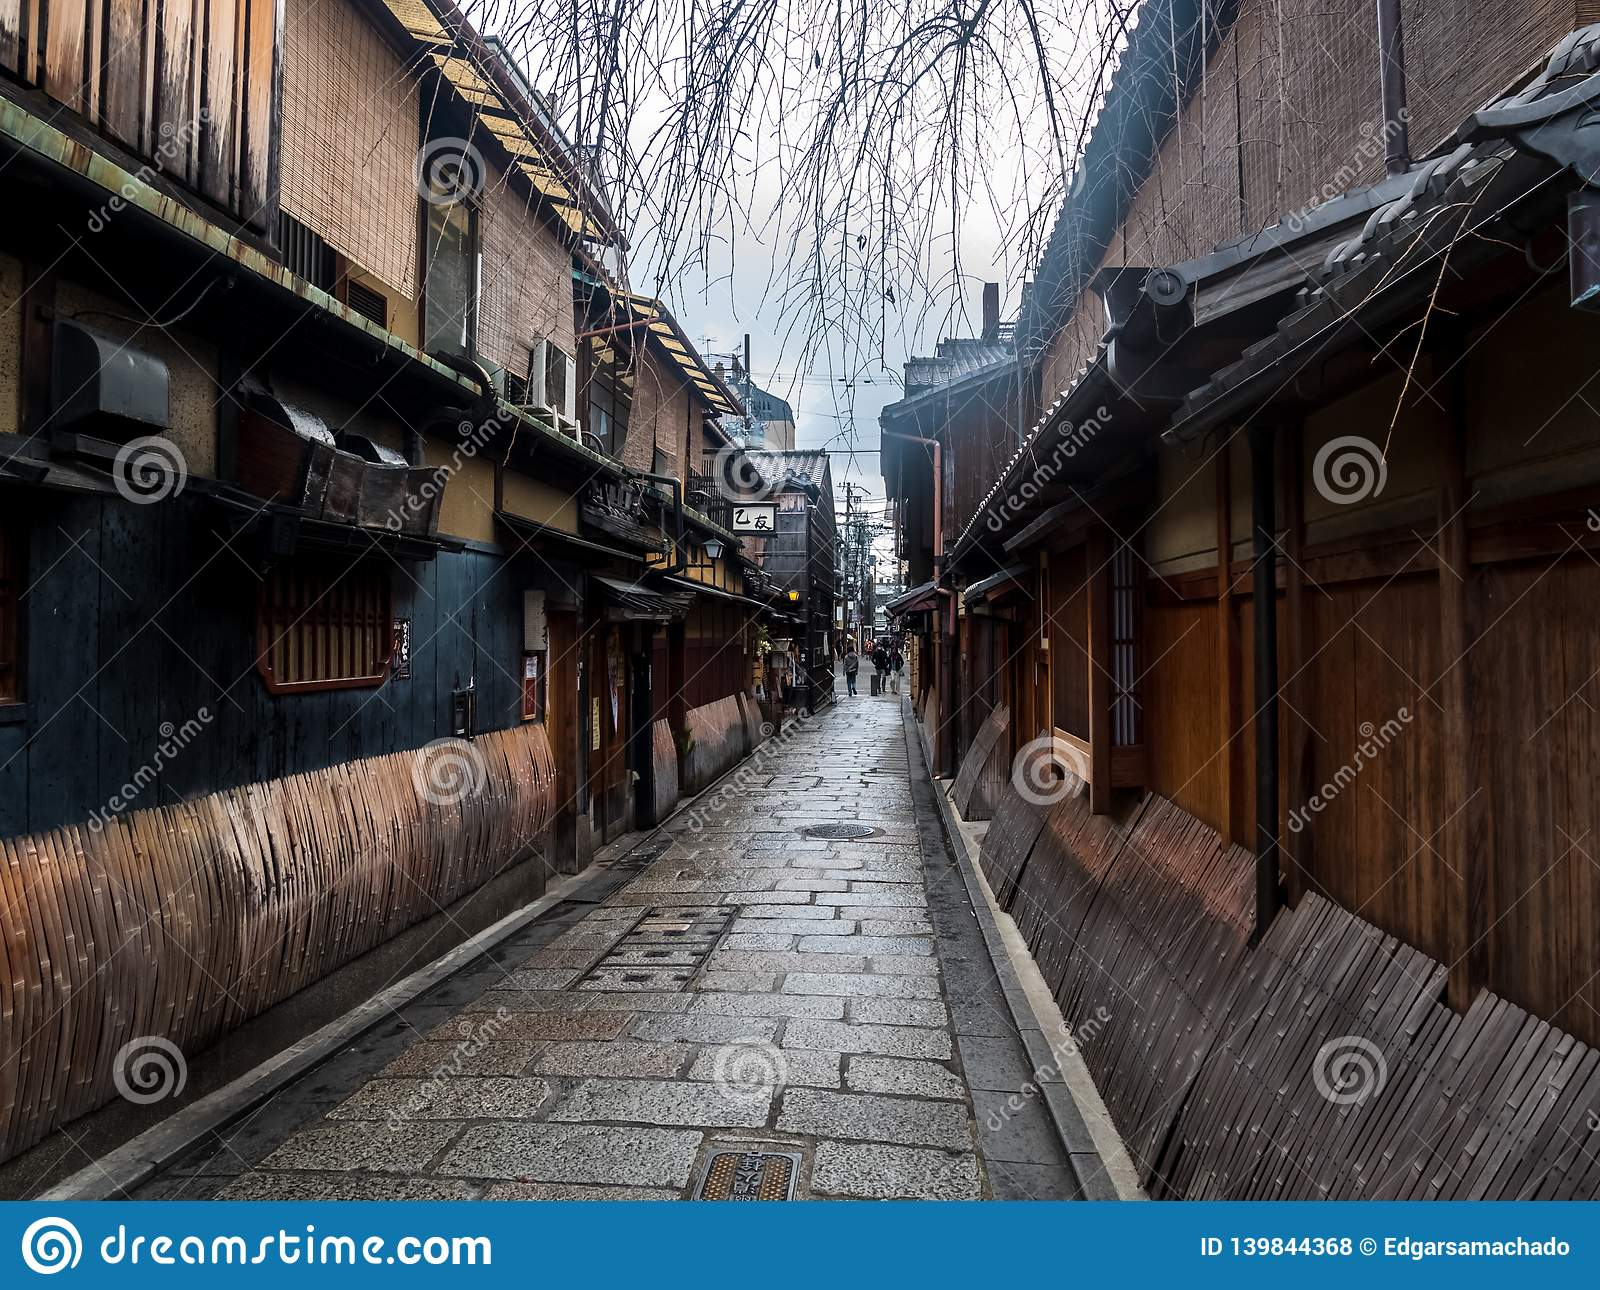 Gion old street